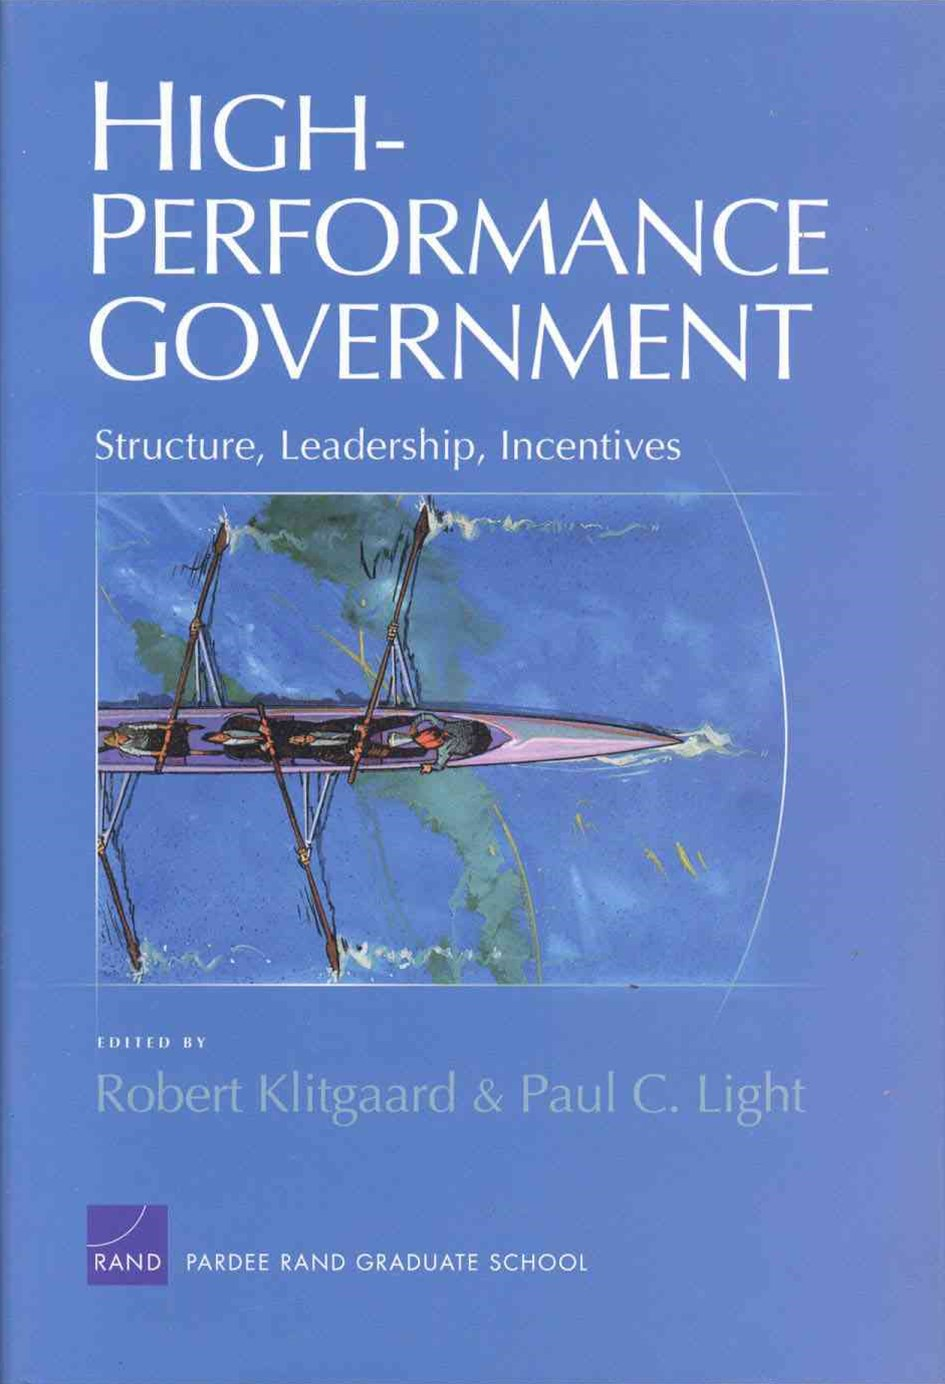 High-Performance Government